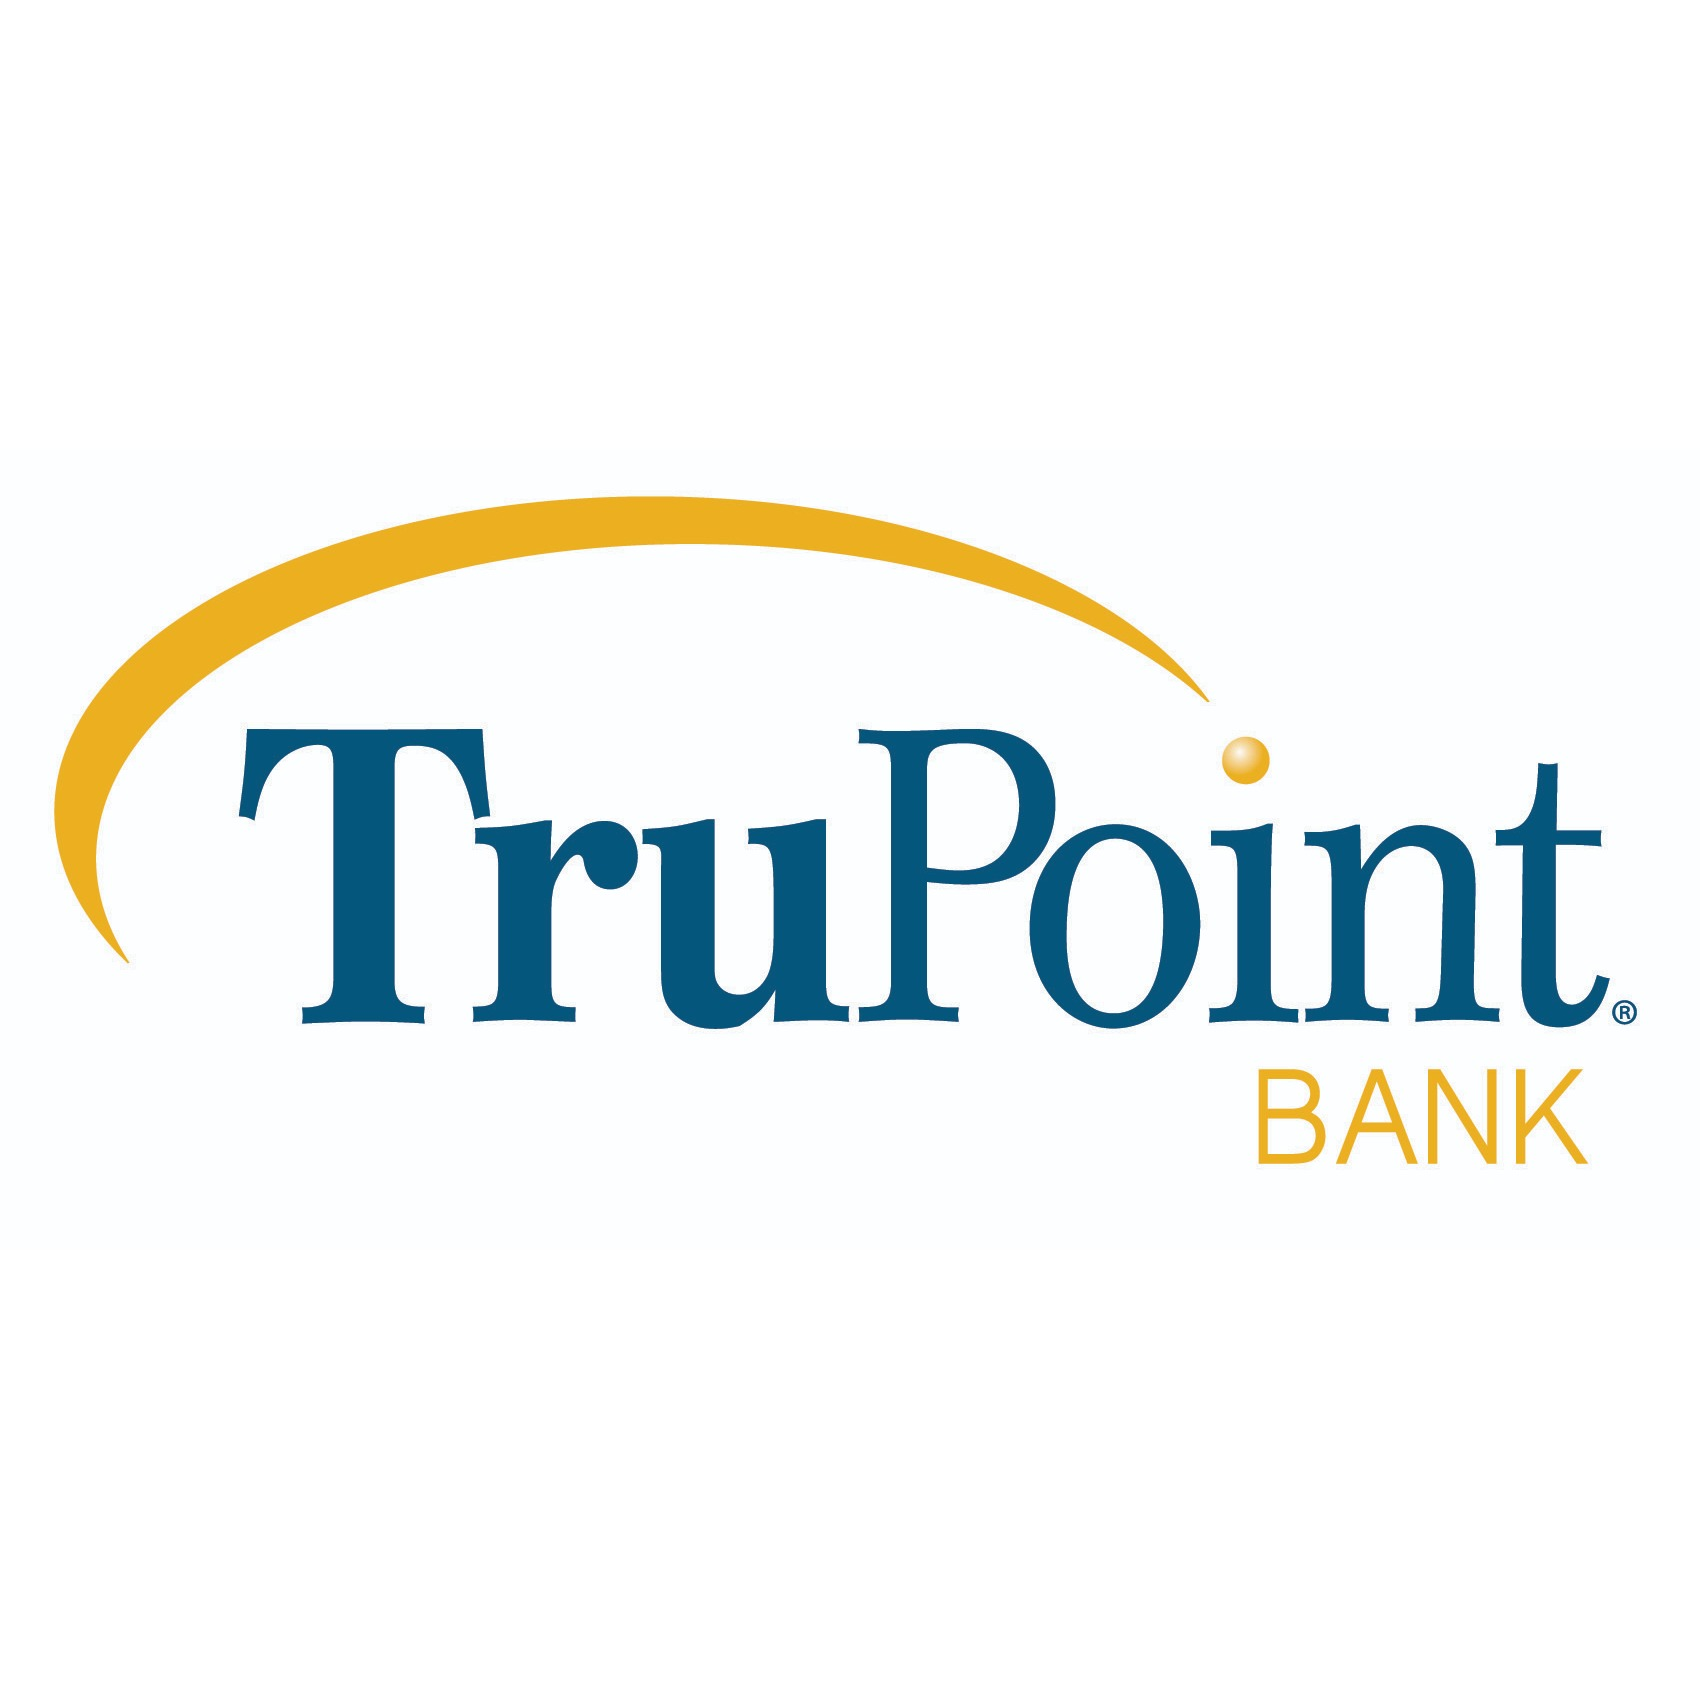 TruPoint Bank